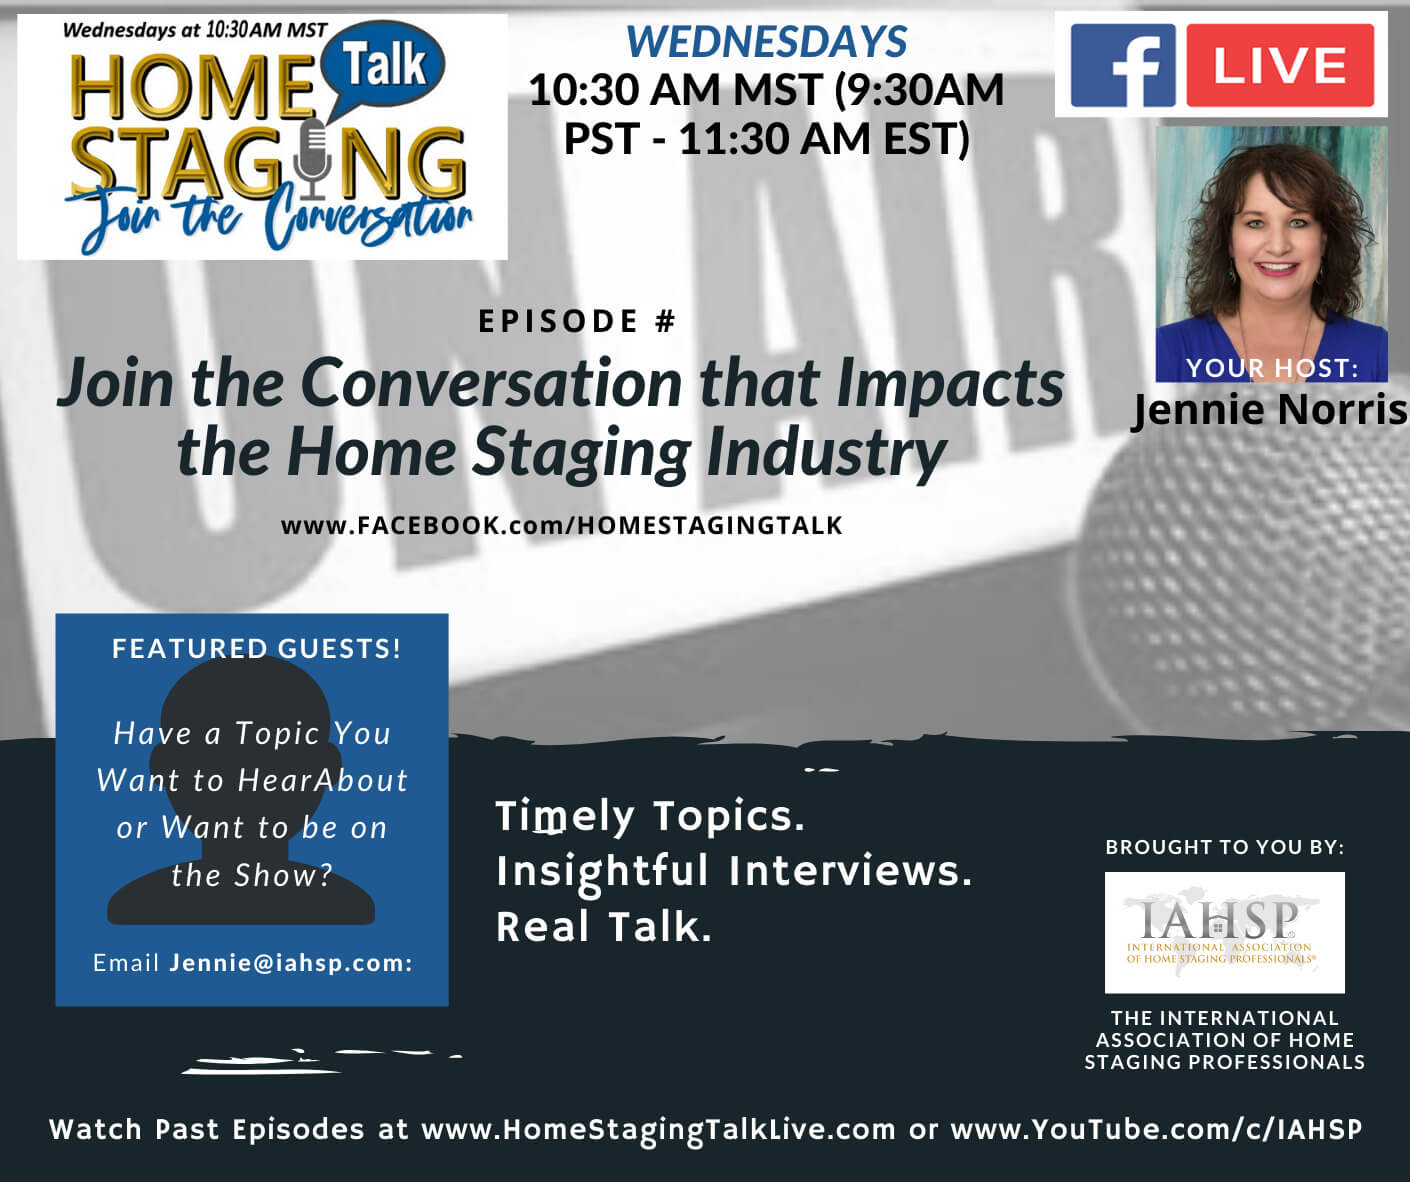 Home Staging Talk Show Live